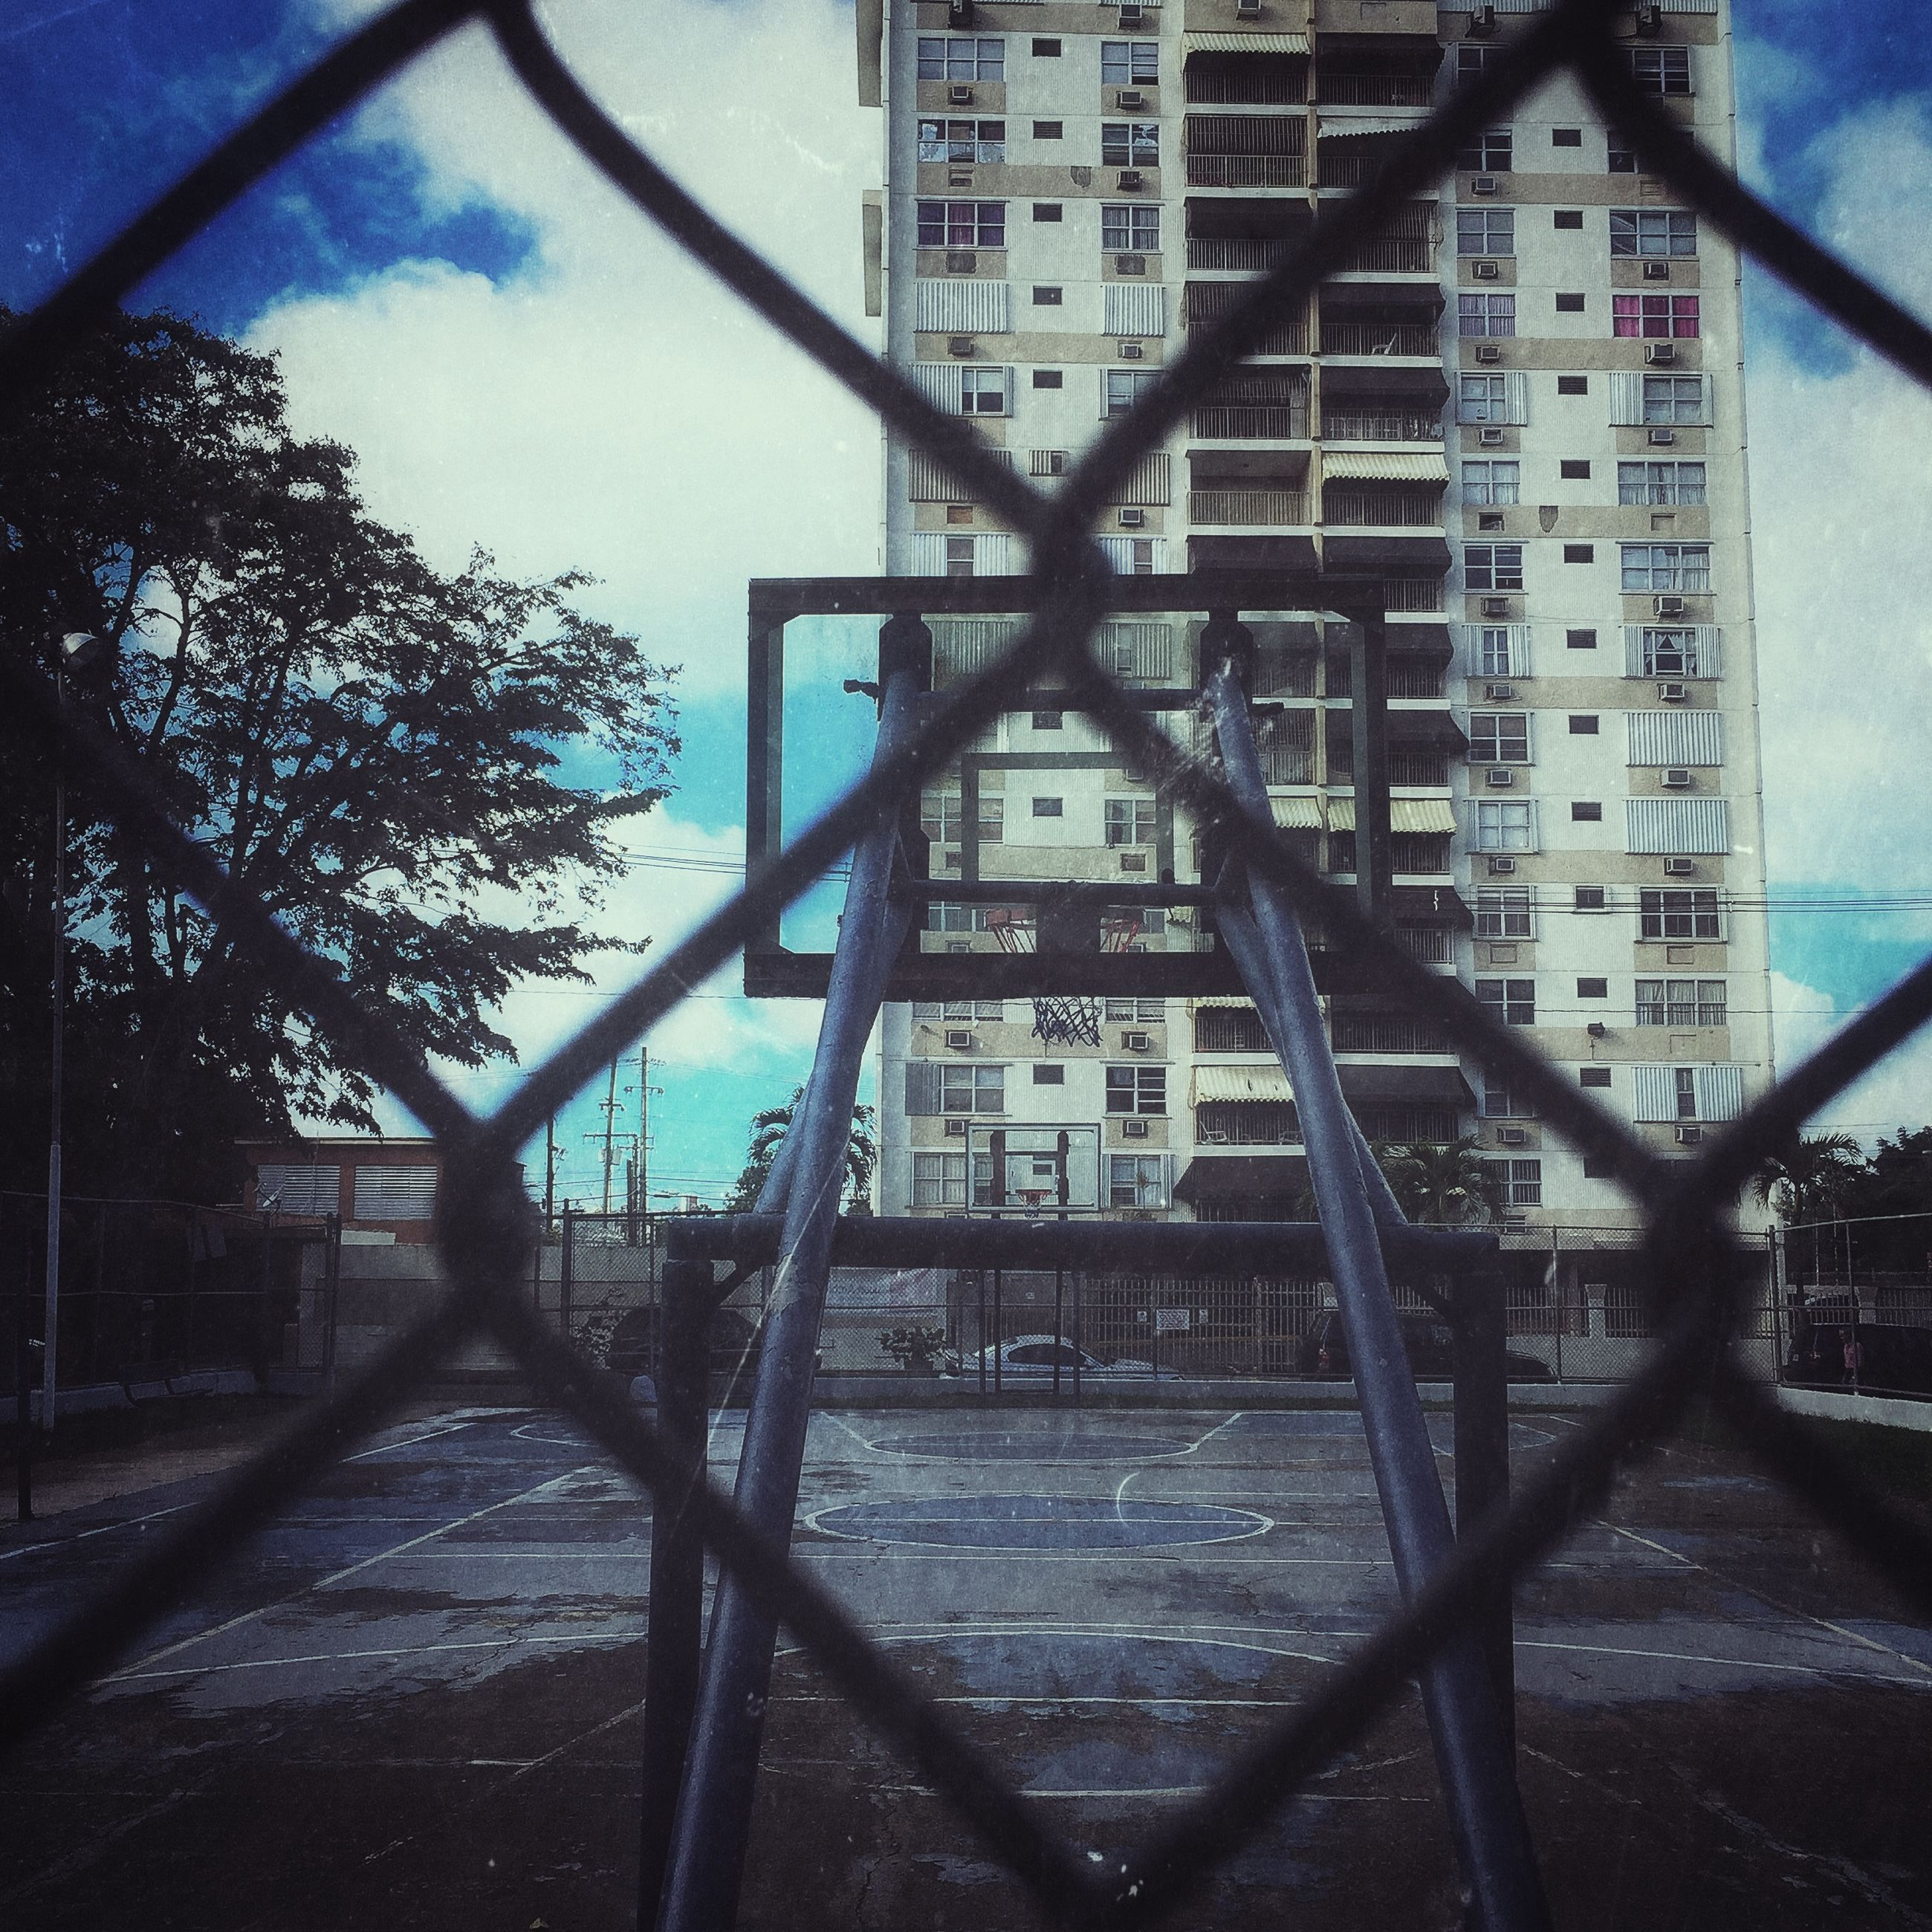 architecture, built structure, building exterior, city, building, residential building, residential structure, railing, sky, day, the way forward, outdoors, no people, window, street, sunlight, chainlink fence, shadow, house, reflection